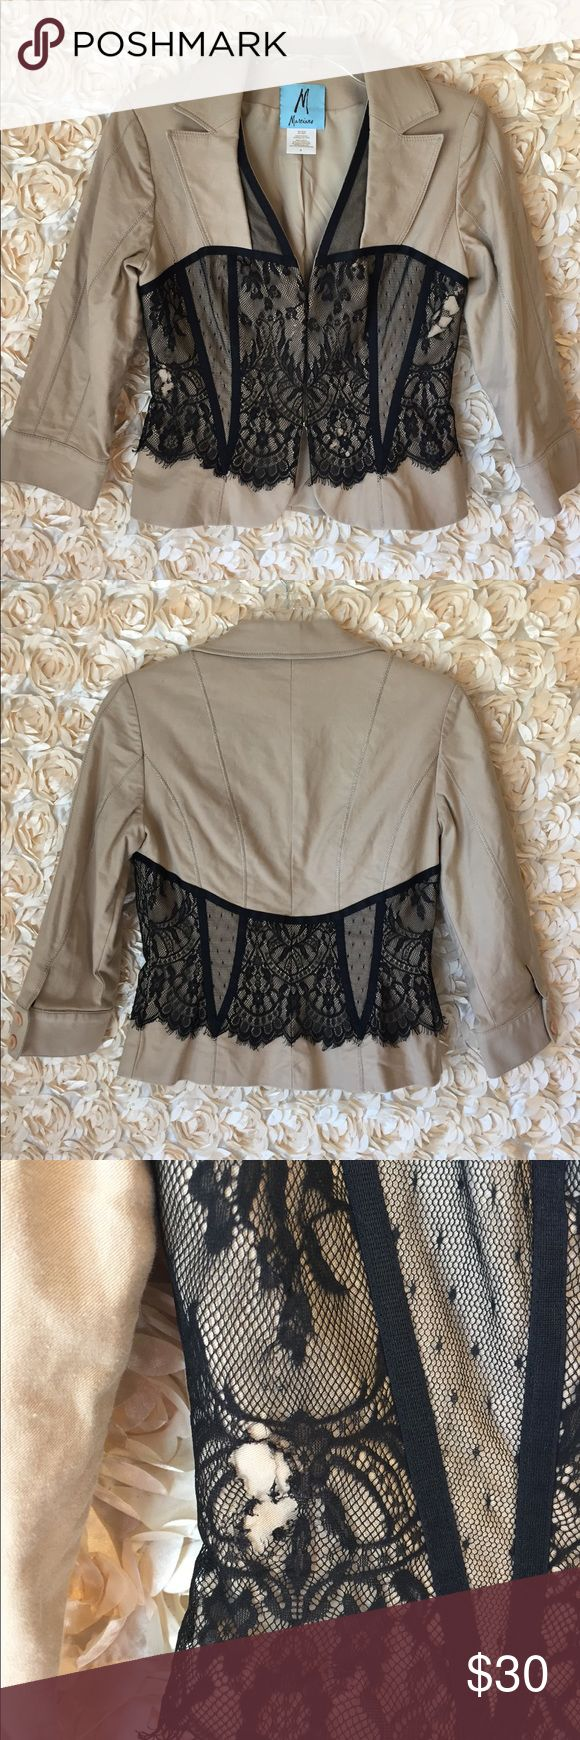 Guess - Marciano Jacket with Lace Guess Marciano Jacket. Beige with Black Lace. Size 6. There are two tears in the lace that you could mend with a few stitches. Guess by Marciano Jackets & Coats Blazers